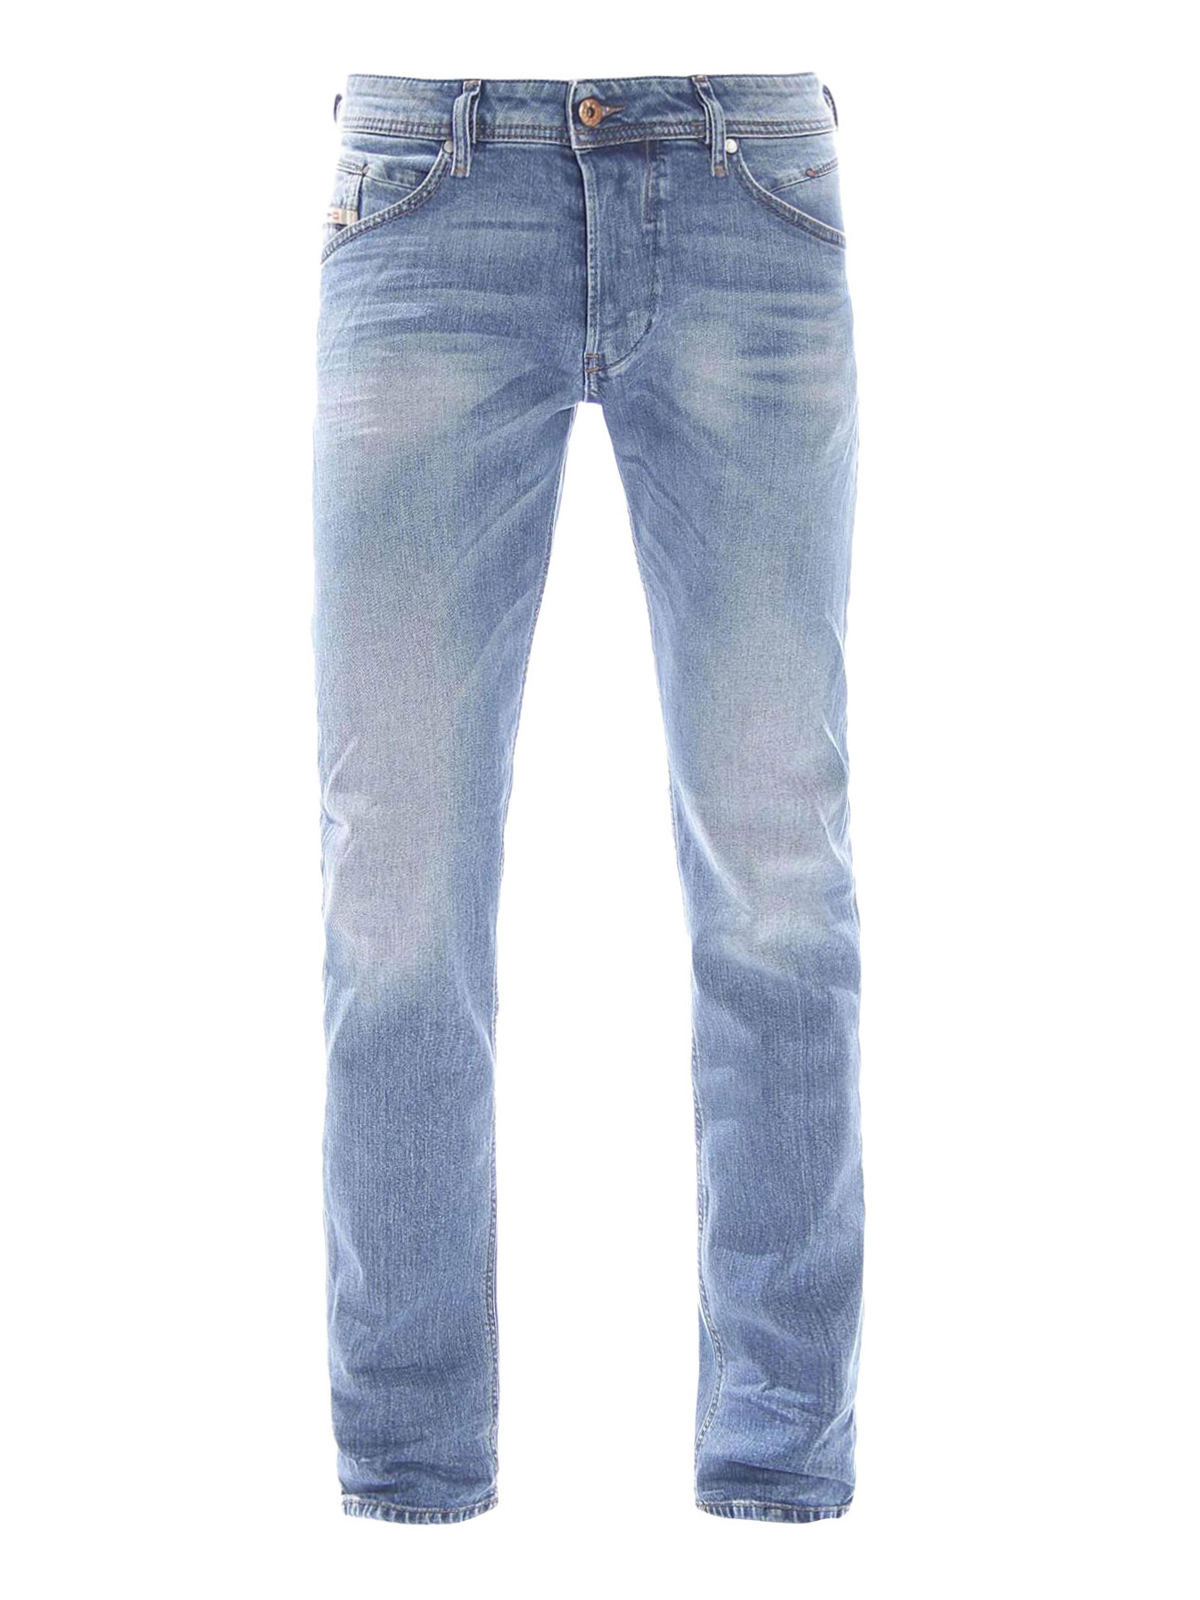 belther tapered jeans by diesel straight leg jeans ikrix. Black Bedroom Furniture Sets. Home Design Ideas